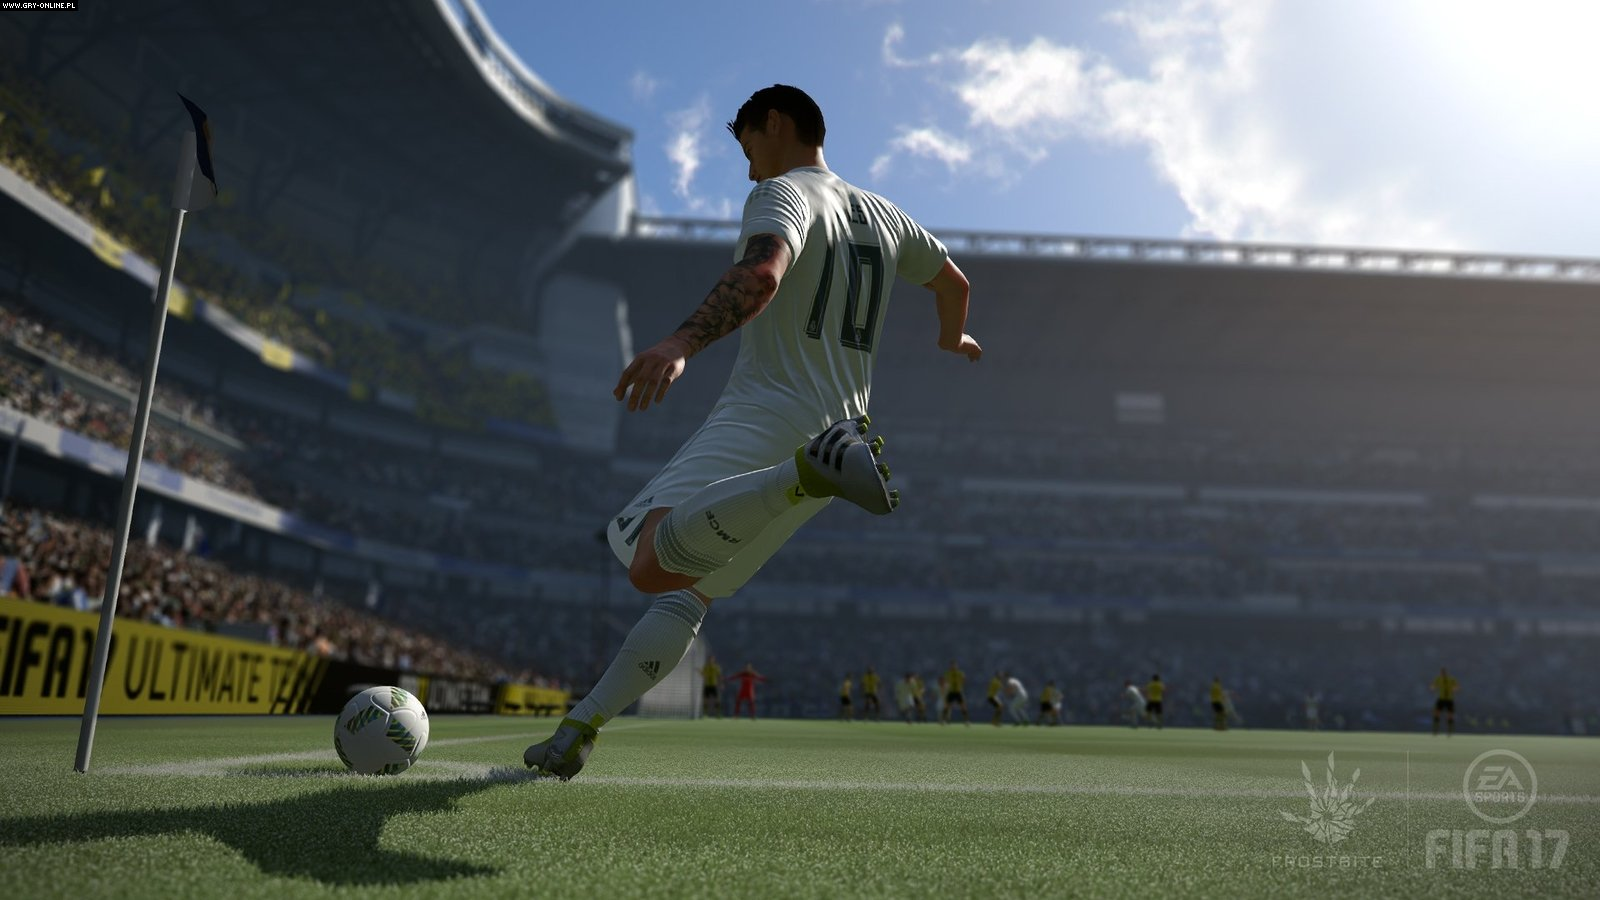 FIFA 17 PC, PS4, XONE Games Image 4/13, EA Sports, Electronic Arts Inc.